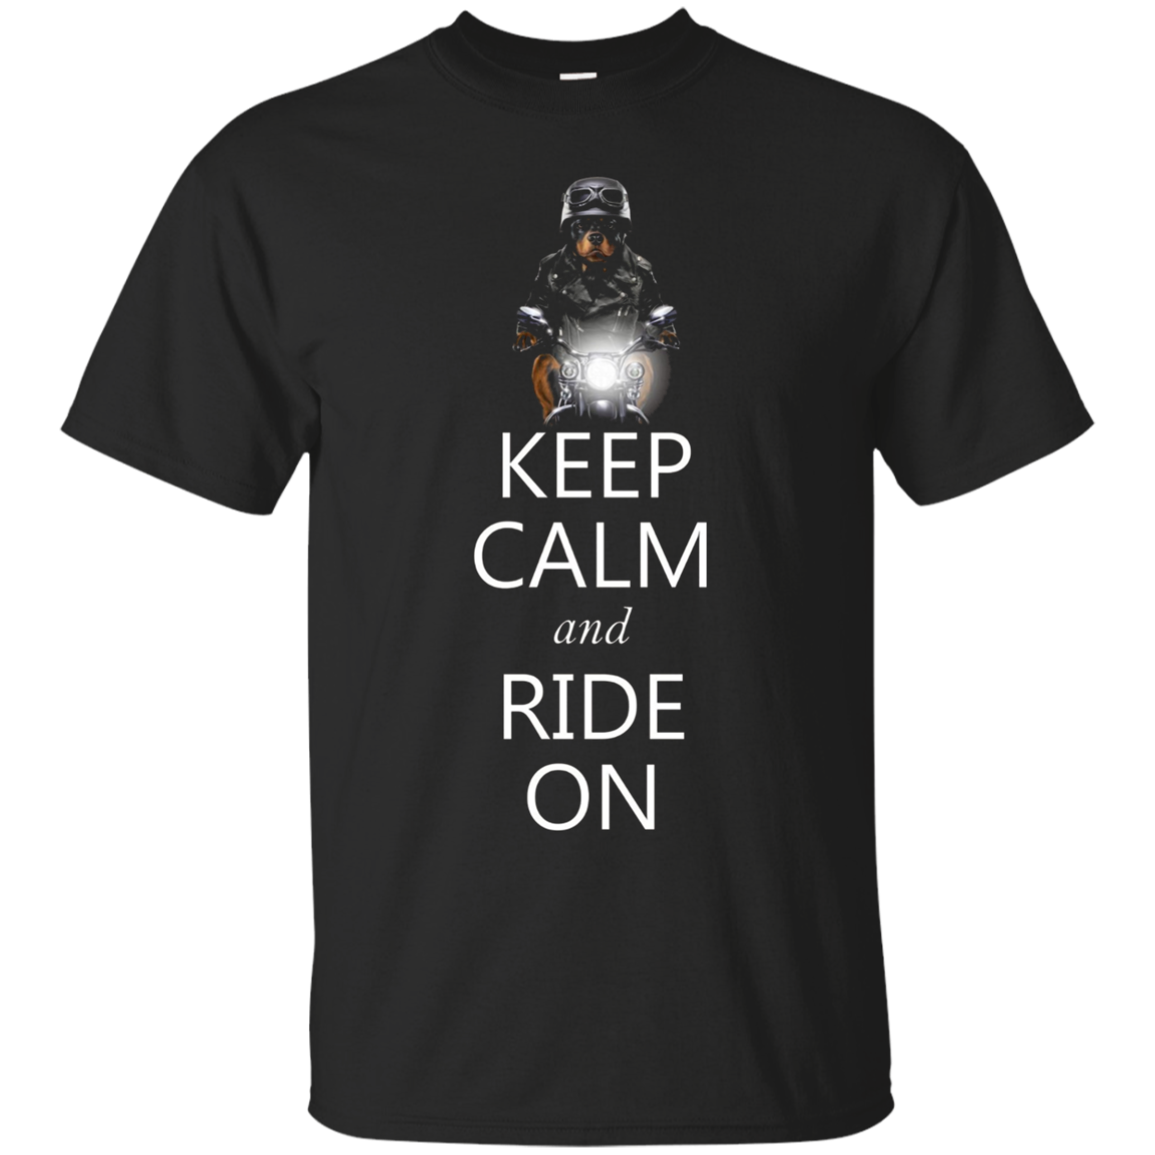 Keep Calm and Ride on, Rottweiler Dog on Motorcycle T-Shirt